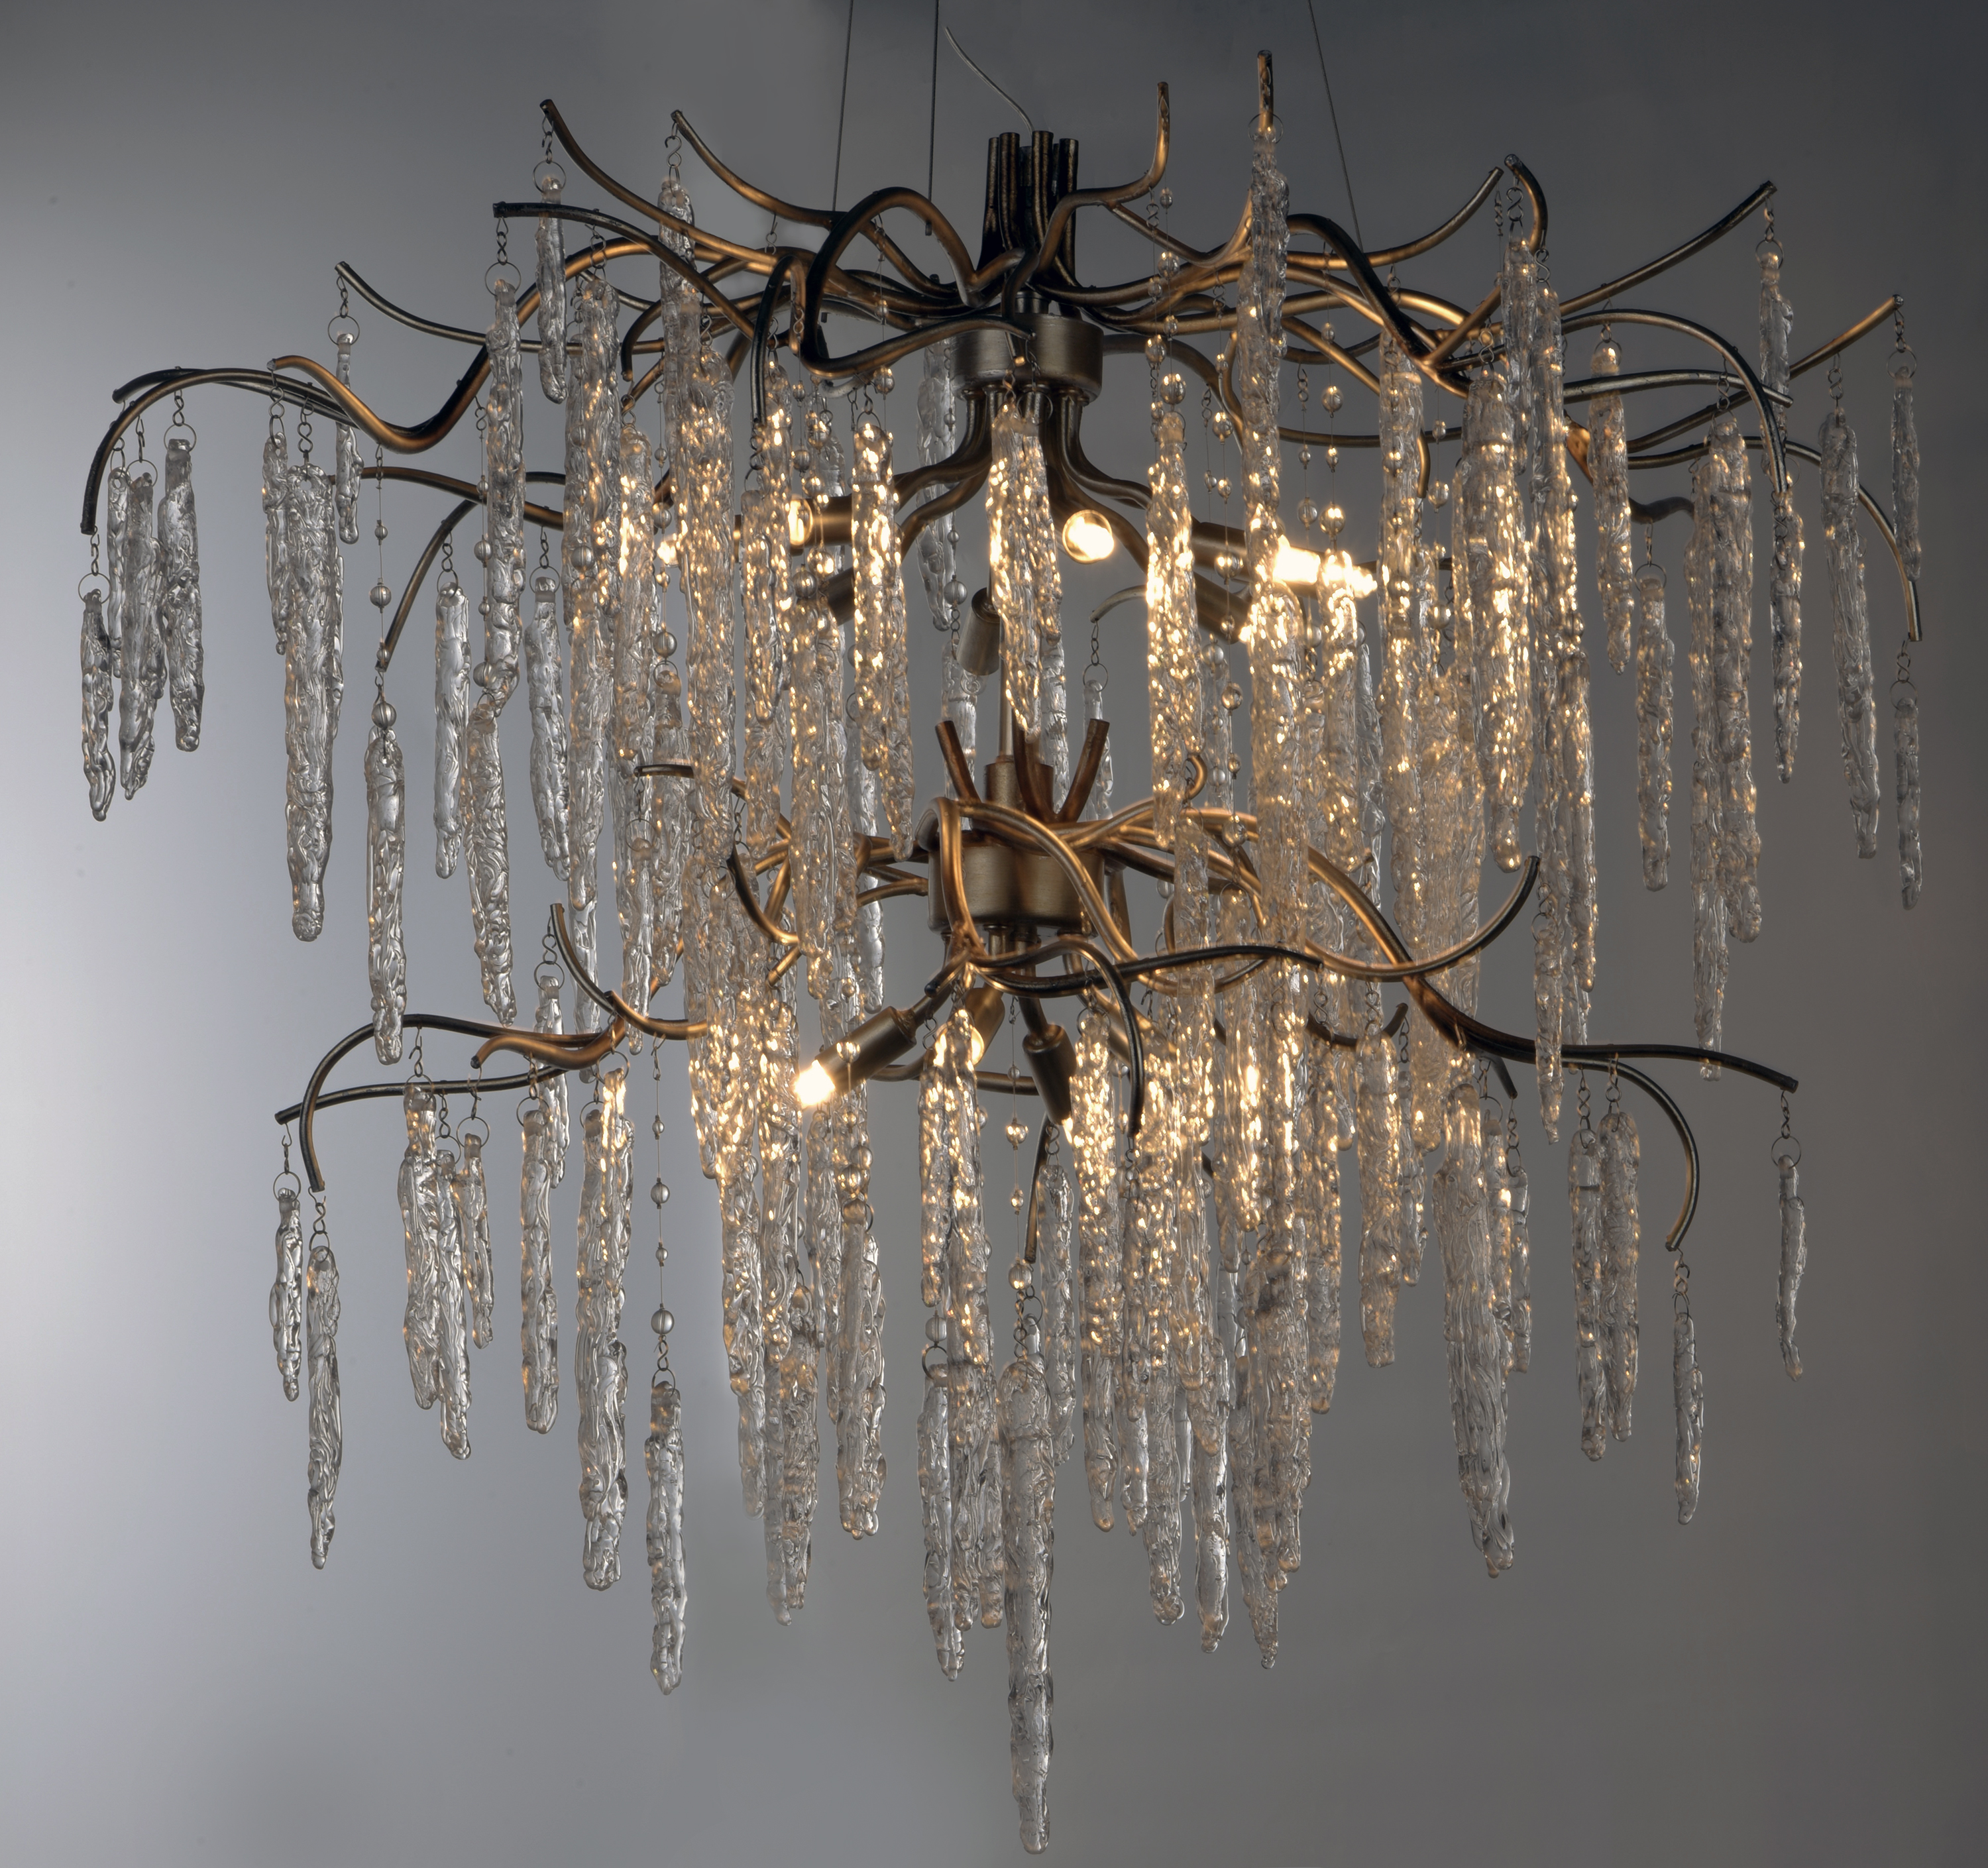 Willow 12 light chandelier multi tier chandelier maxim lighting willow willow 12 light chandelier aloadofball Choice Image